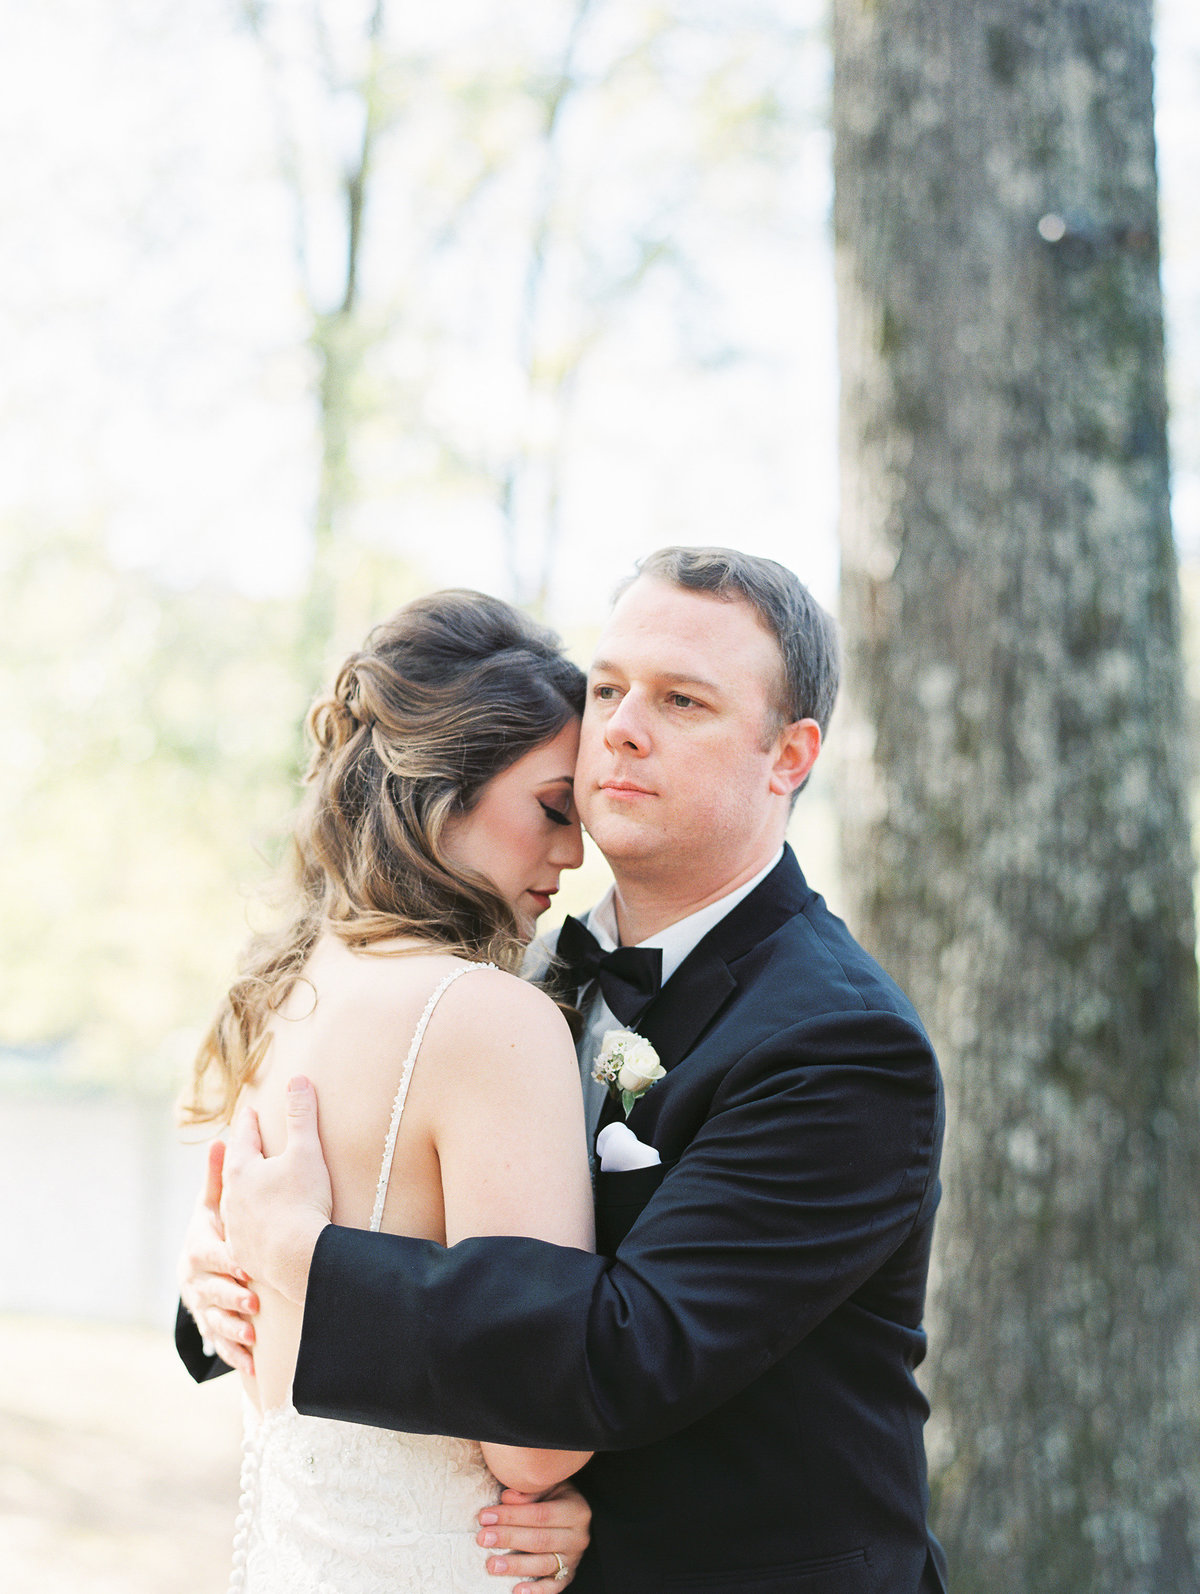 695_Anne & Ryan Wedding_Lindsay Vallas Photog